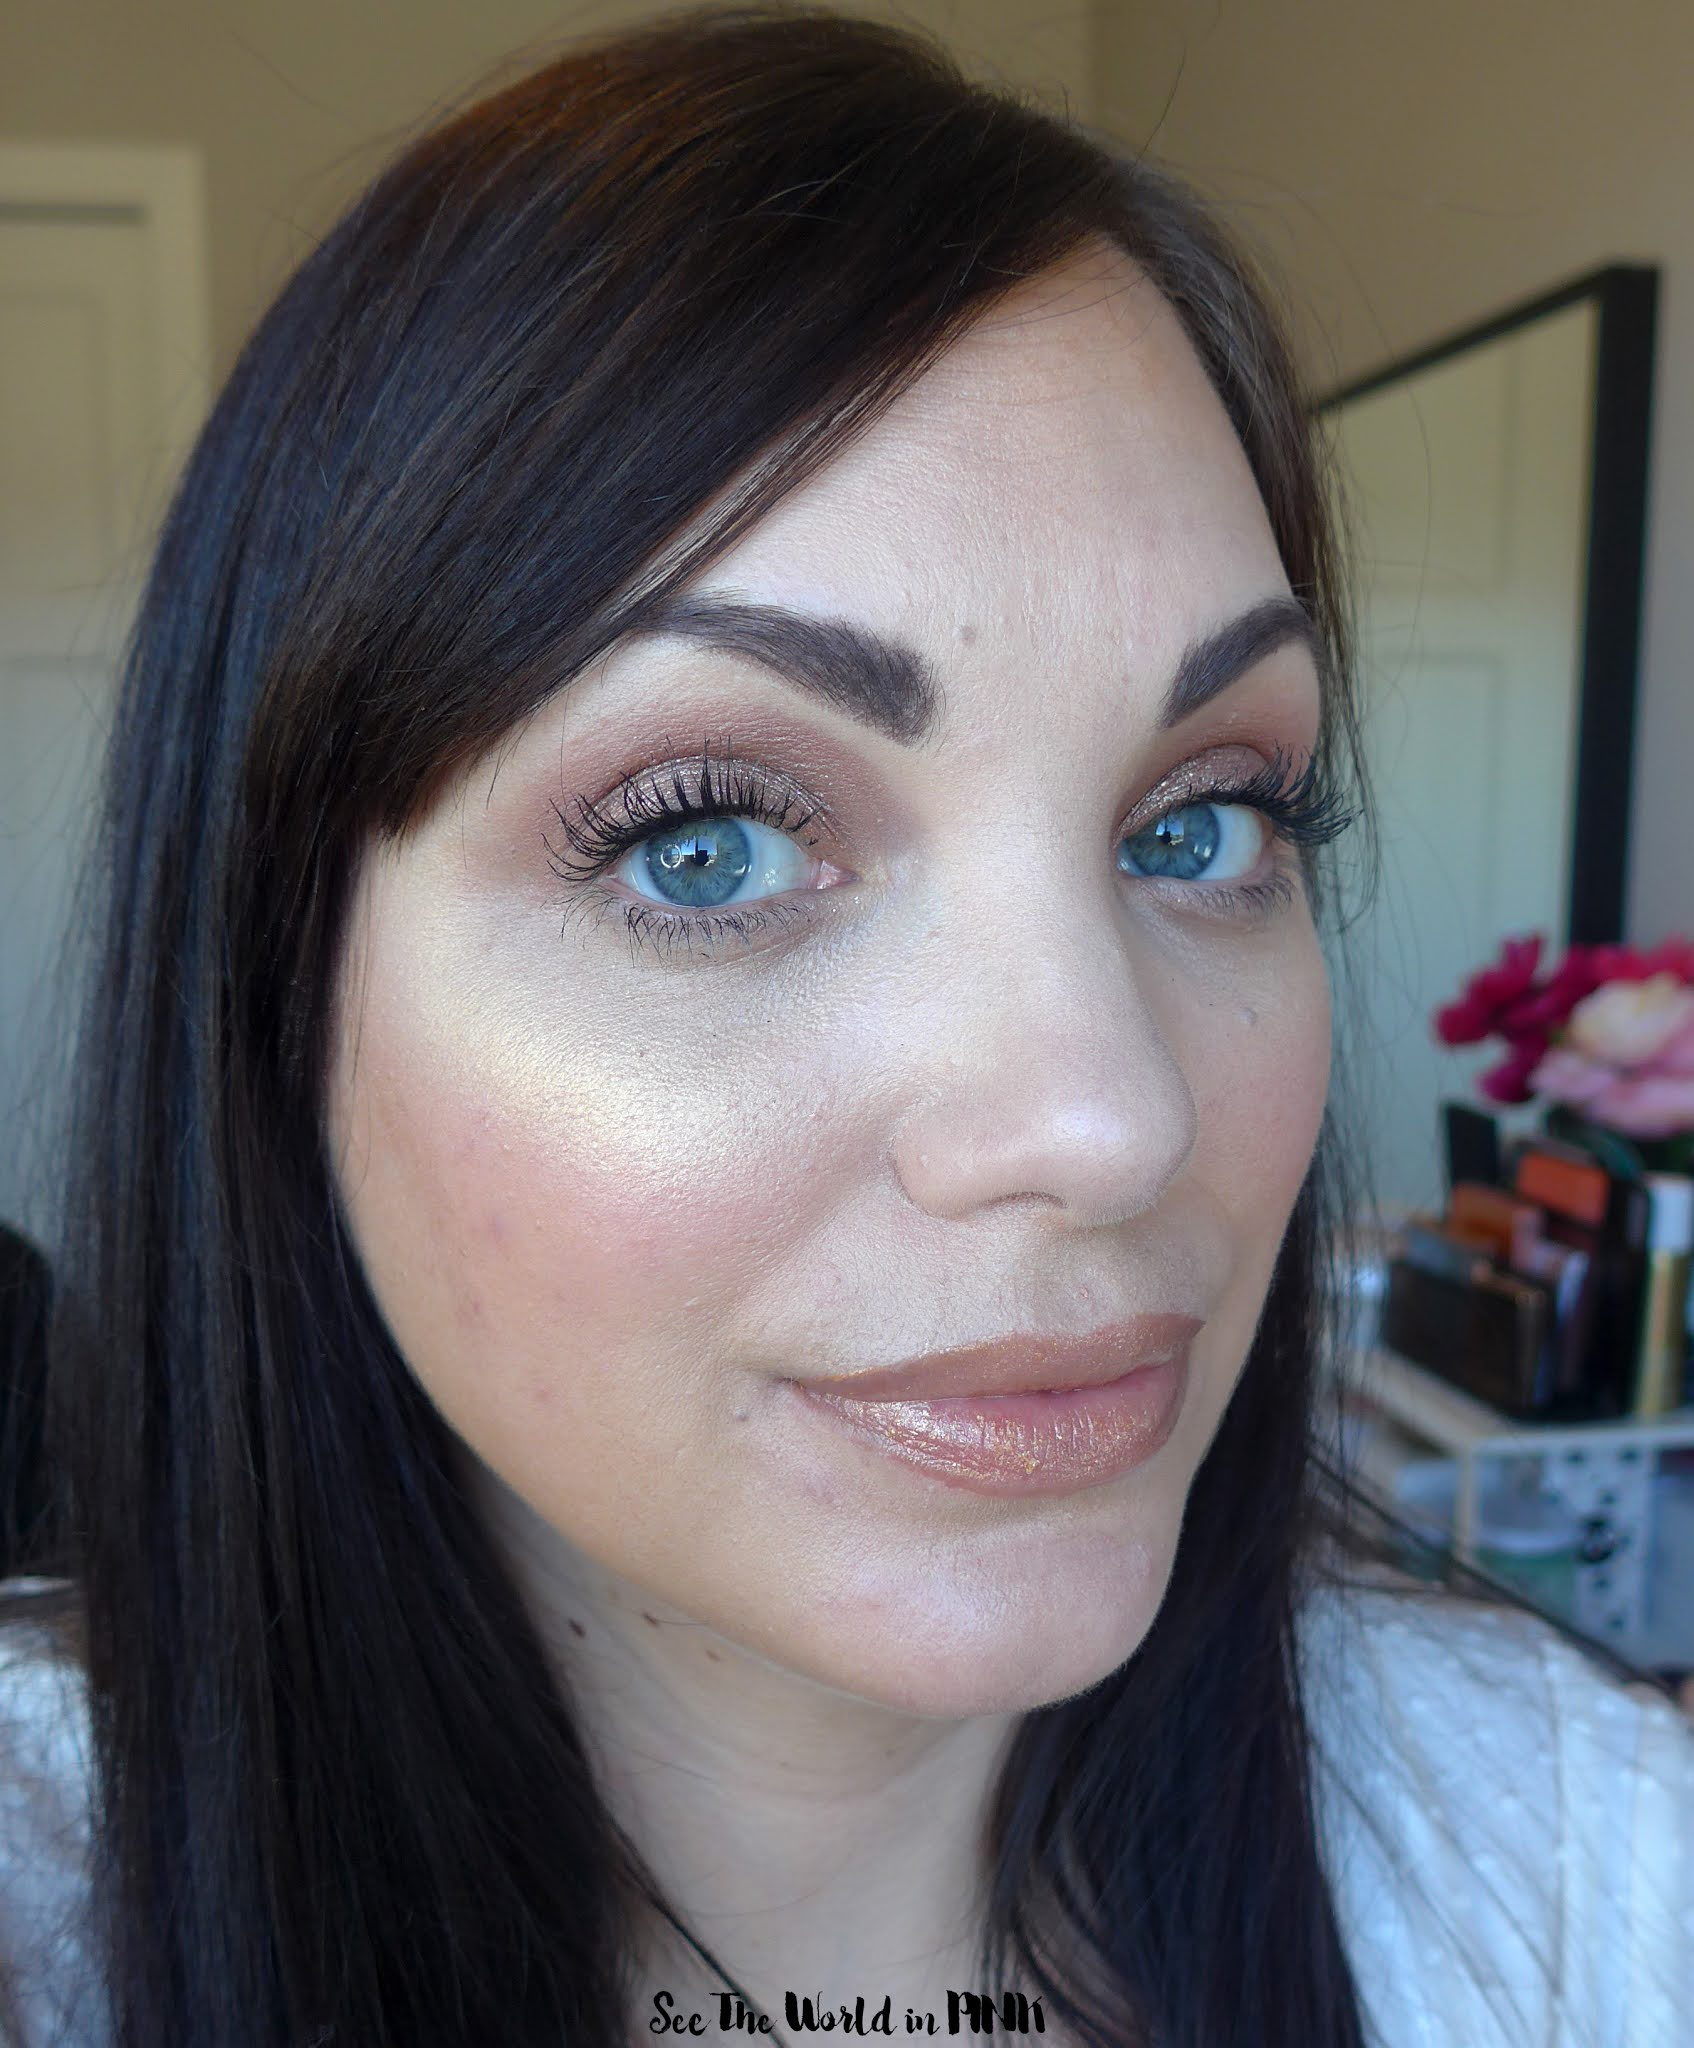 """I Tried The Makeup Revolution """"I Heart Revolution x Disney Fairytale Books Belle"""" Products So You Don't Have To..."""